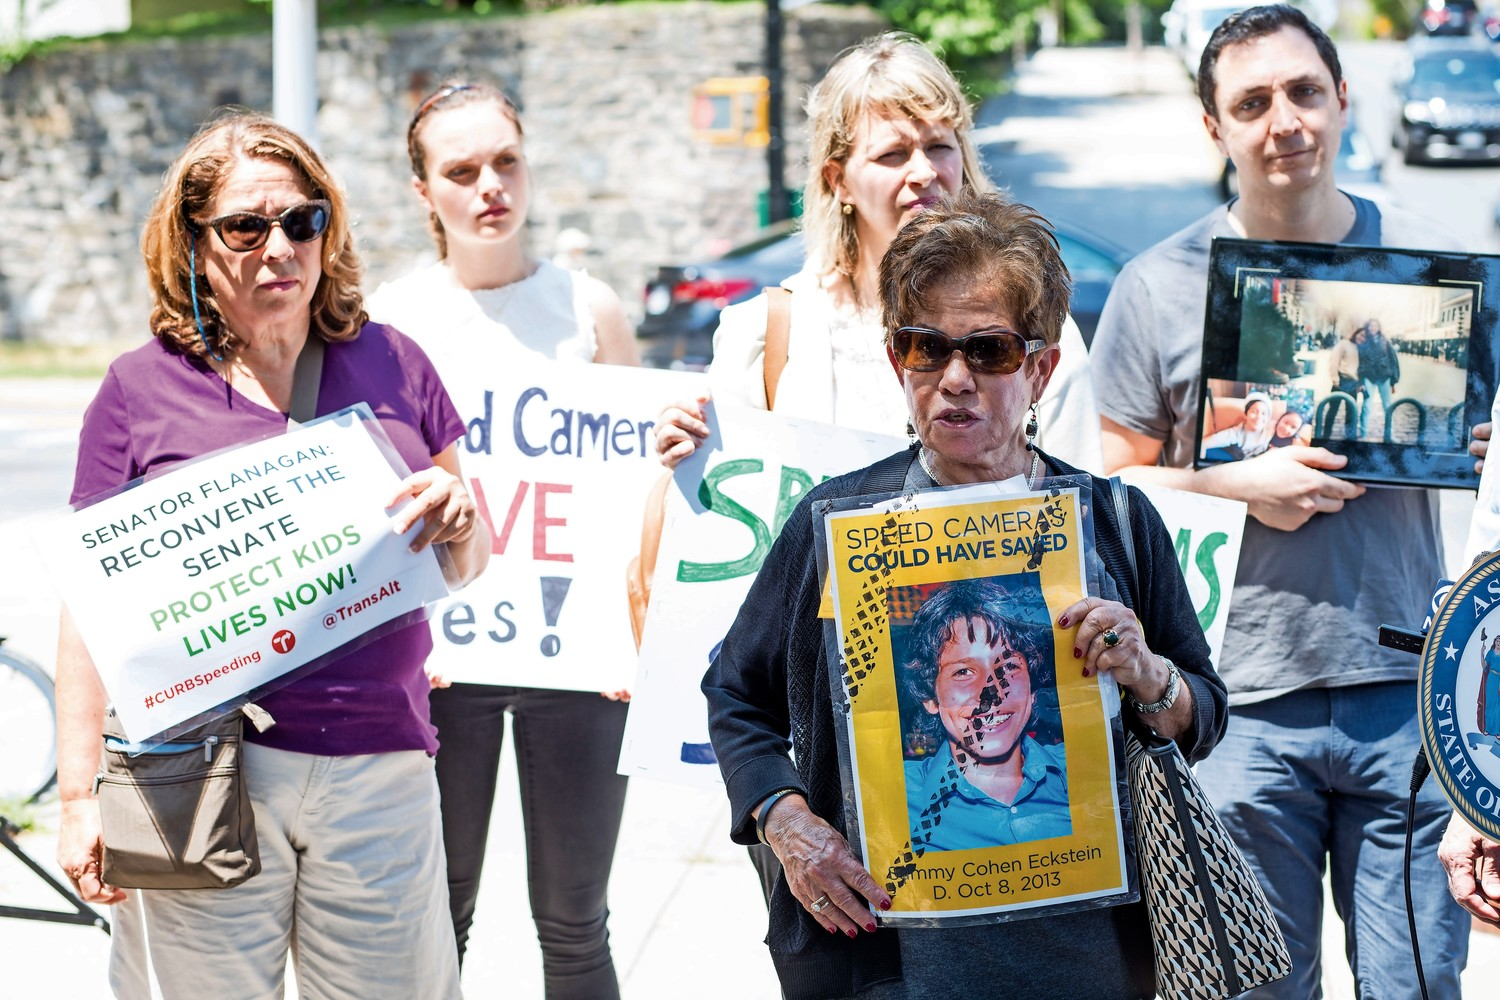 Residents hold signs in favor of speed cameras at a press conference outside of P.S. 81 on July 12. The speed camera program is set to expire on July 25, which residents and local lawmakers feel is a mistake.